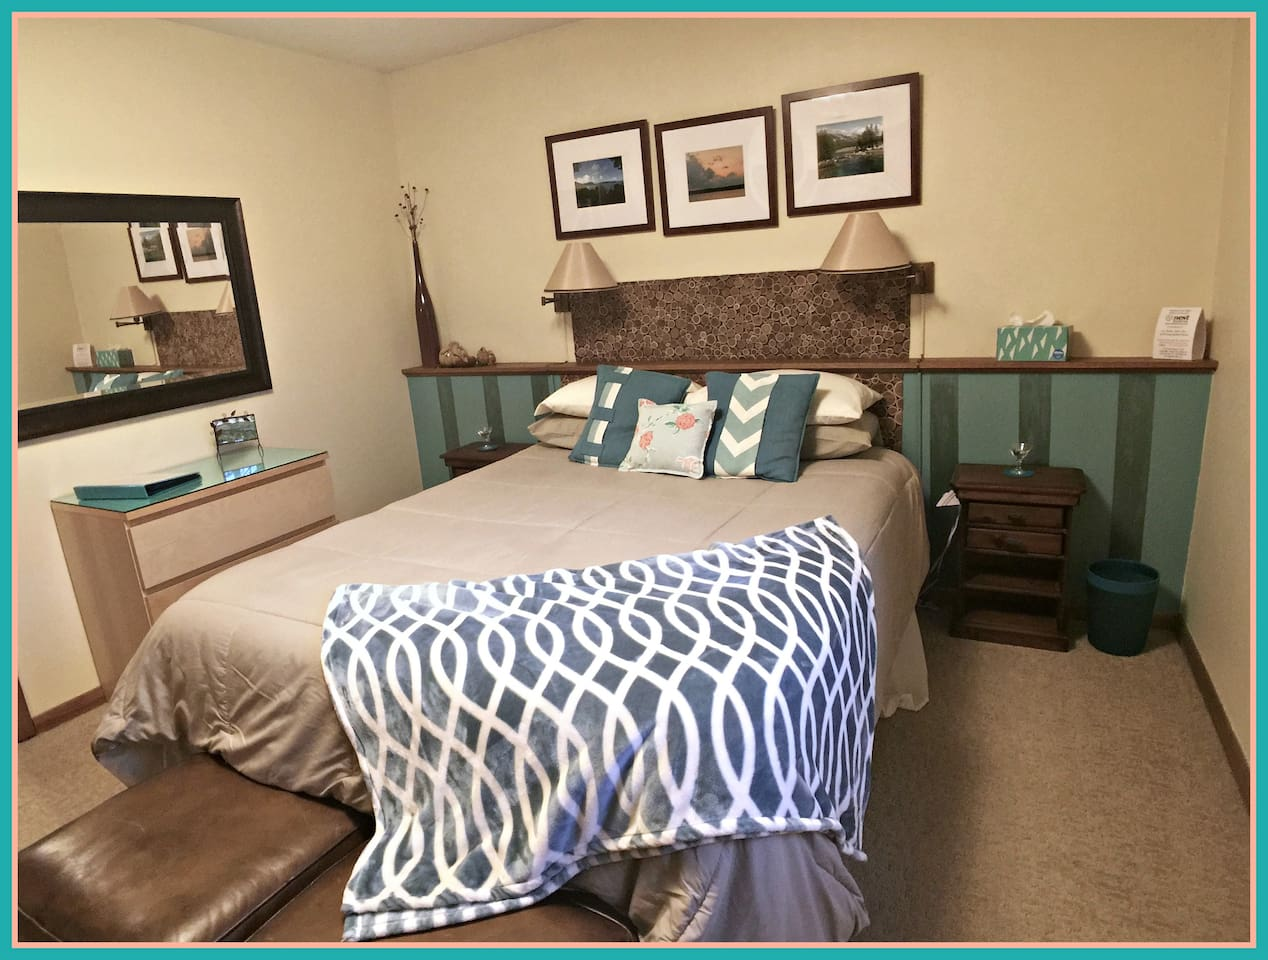 """Your private bedroom-Queen bed, closet and drawer space, mirror, night stands. ....... """"The suite is very cozy and comfortable. We really enjoyed the fireplace."""" --Carrie -10-17"""